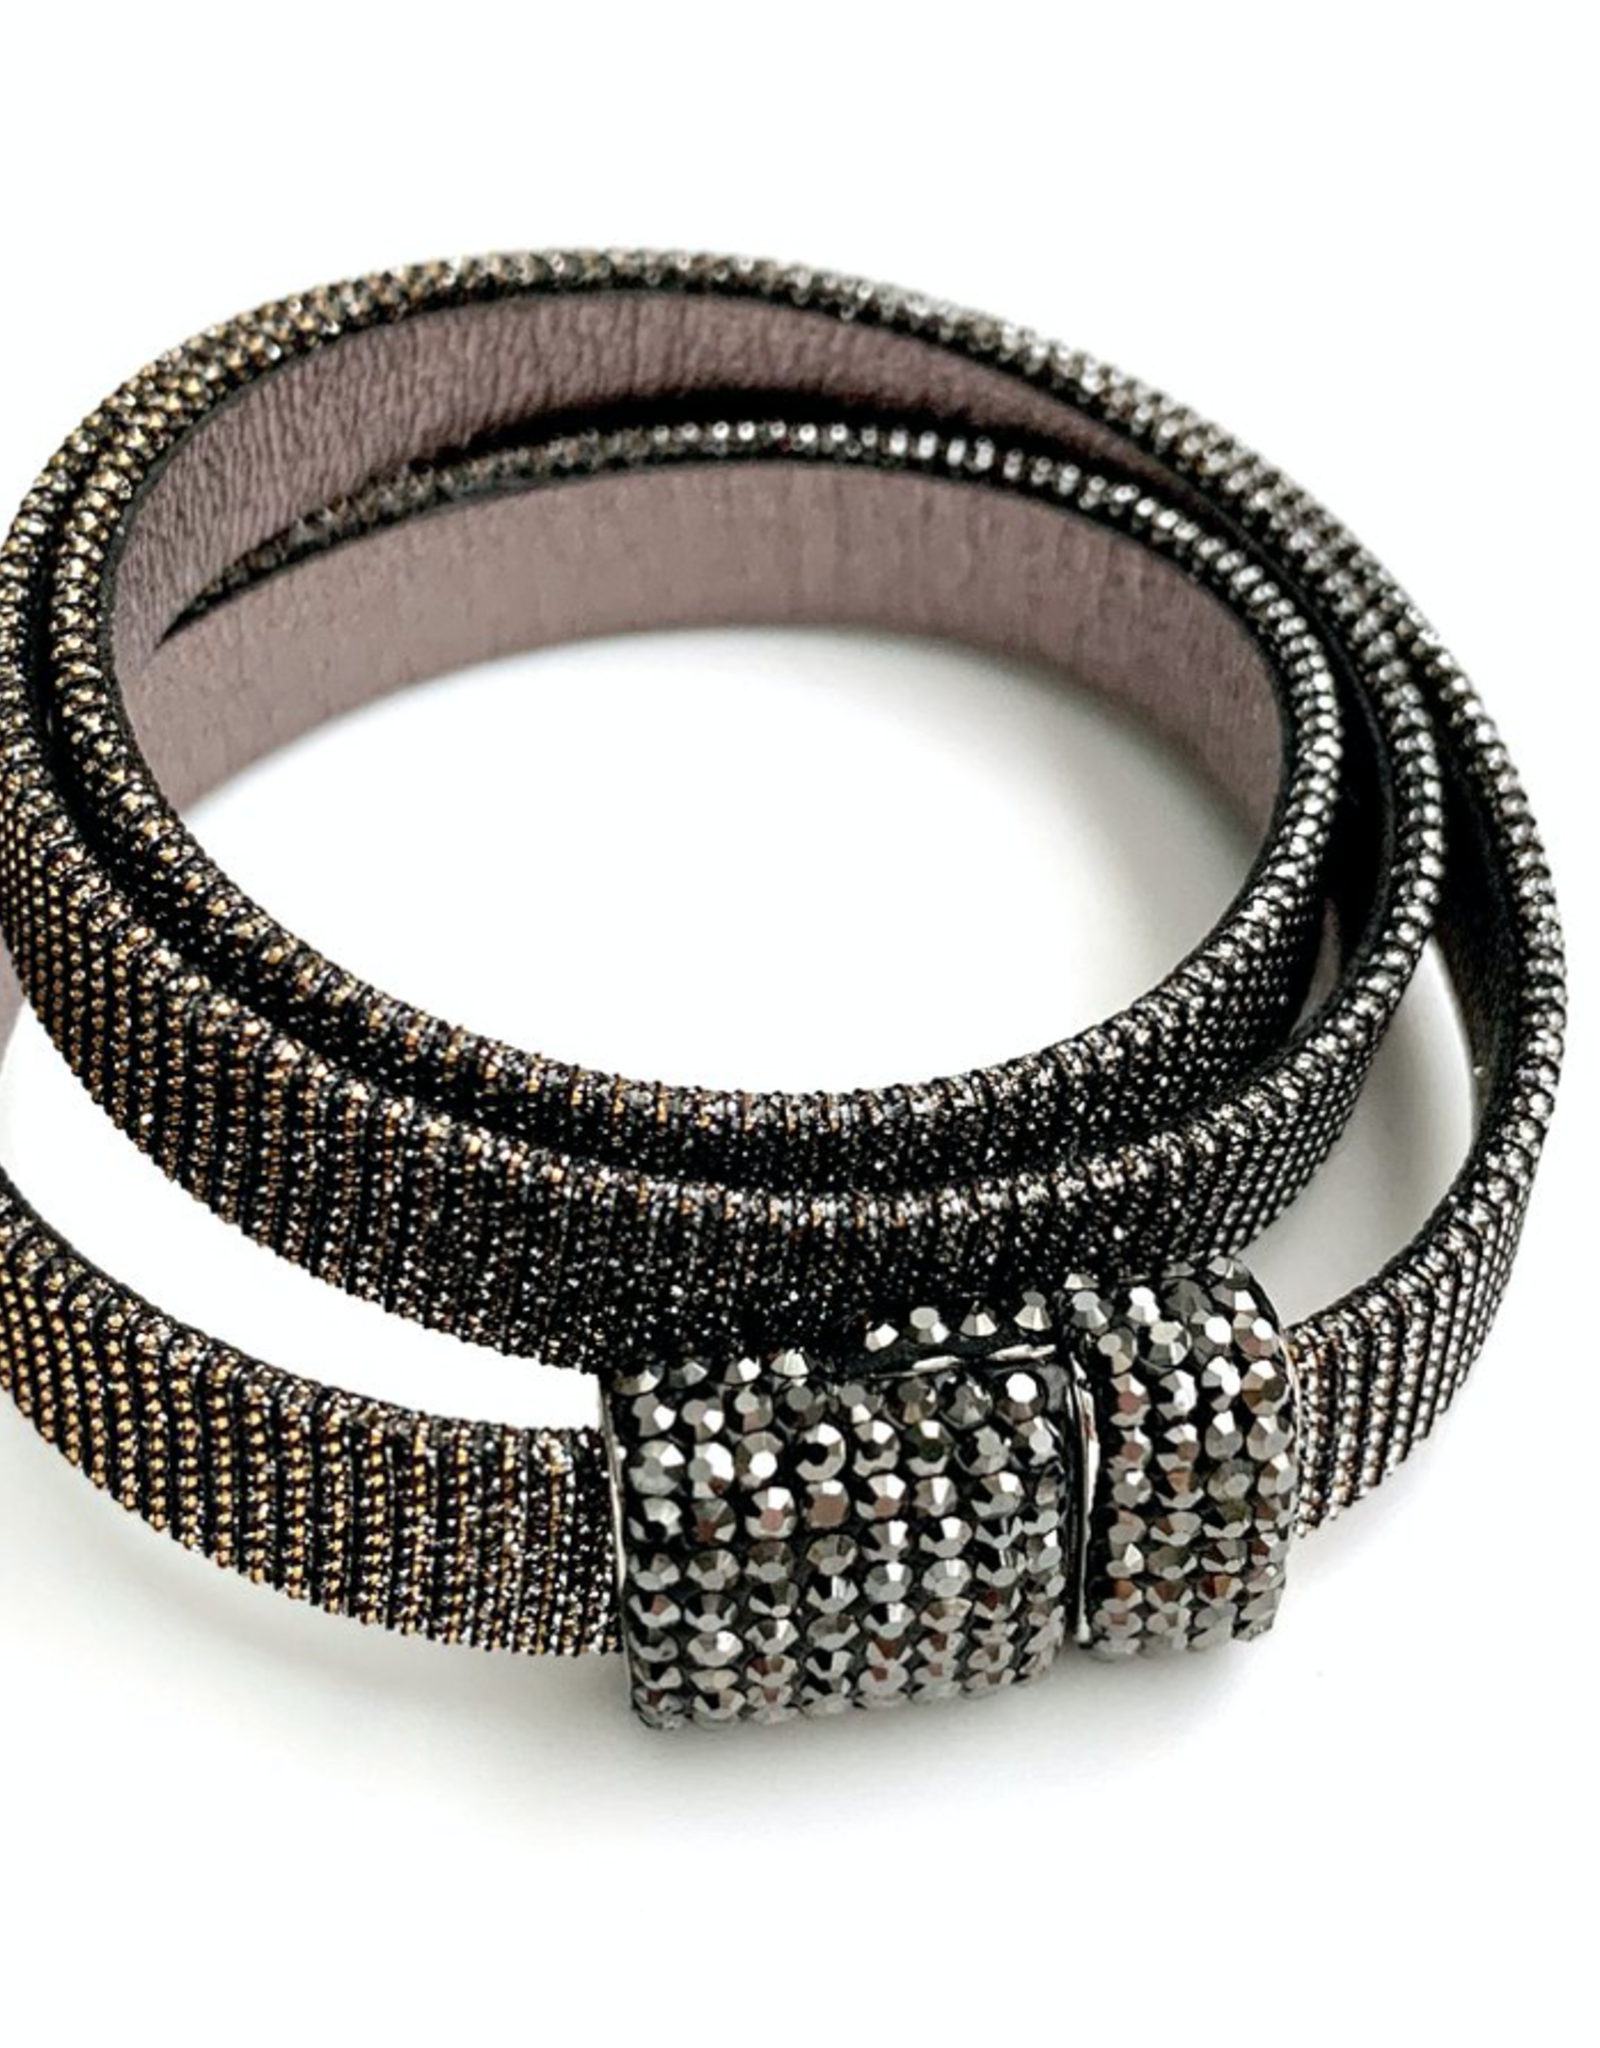 Erin Gray Triple Wrap Leather Bracelet